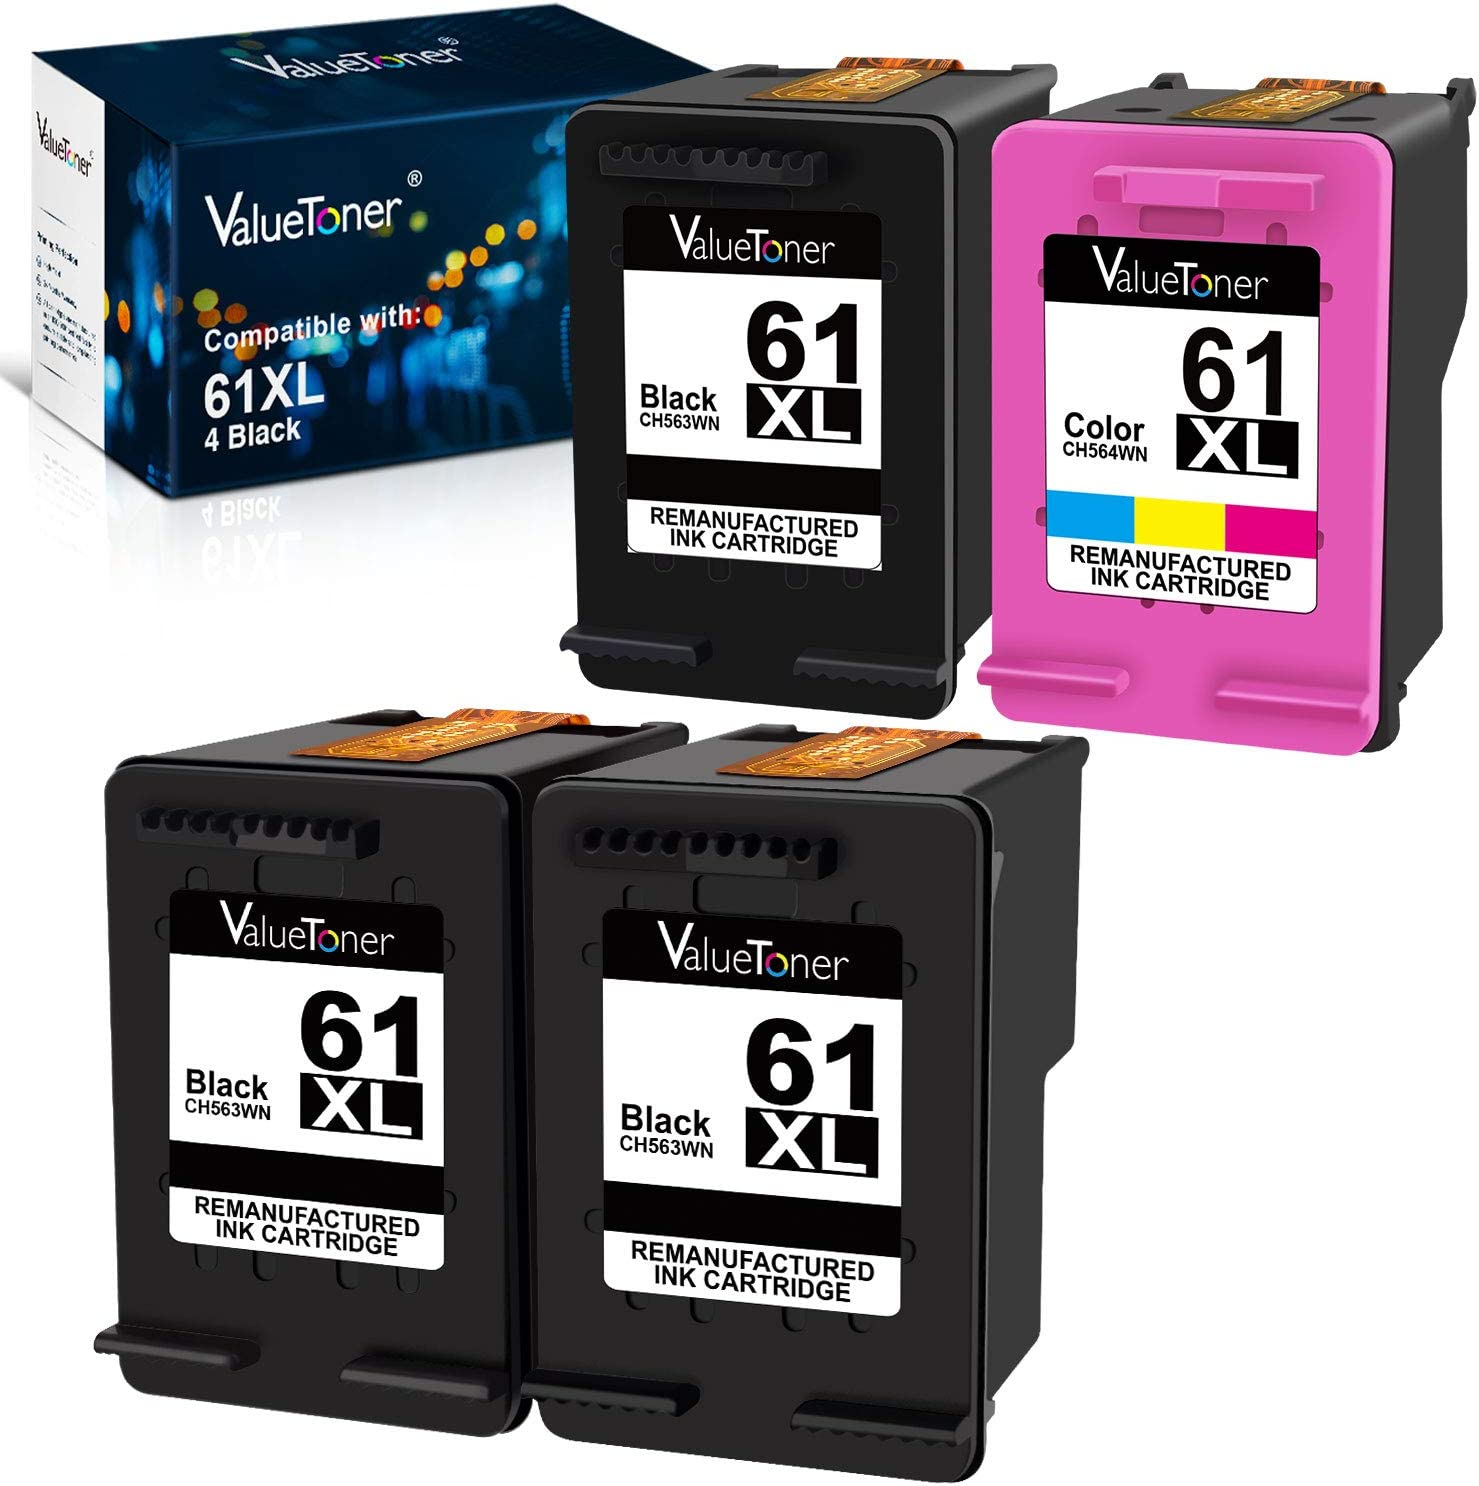 Valuetoner Remanufactured Ink Cartridges Replacement for HP 61XL 2 Pack (1 Black, 1 Tri-Color) Bundled with 2 Black